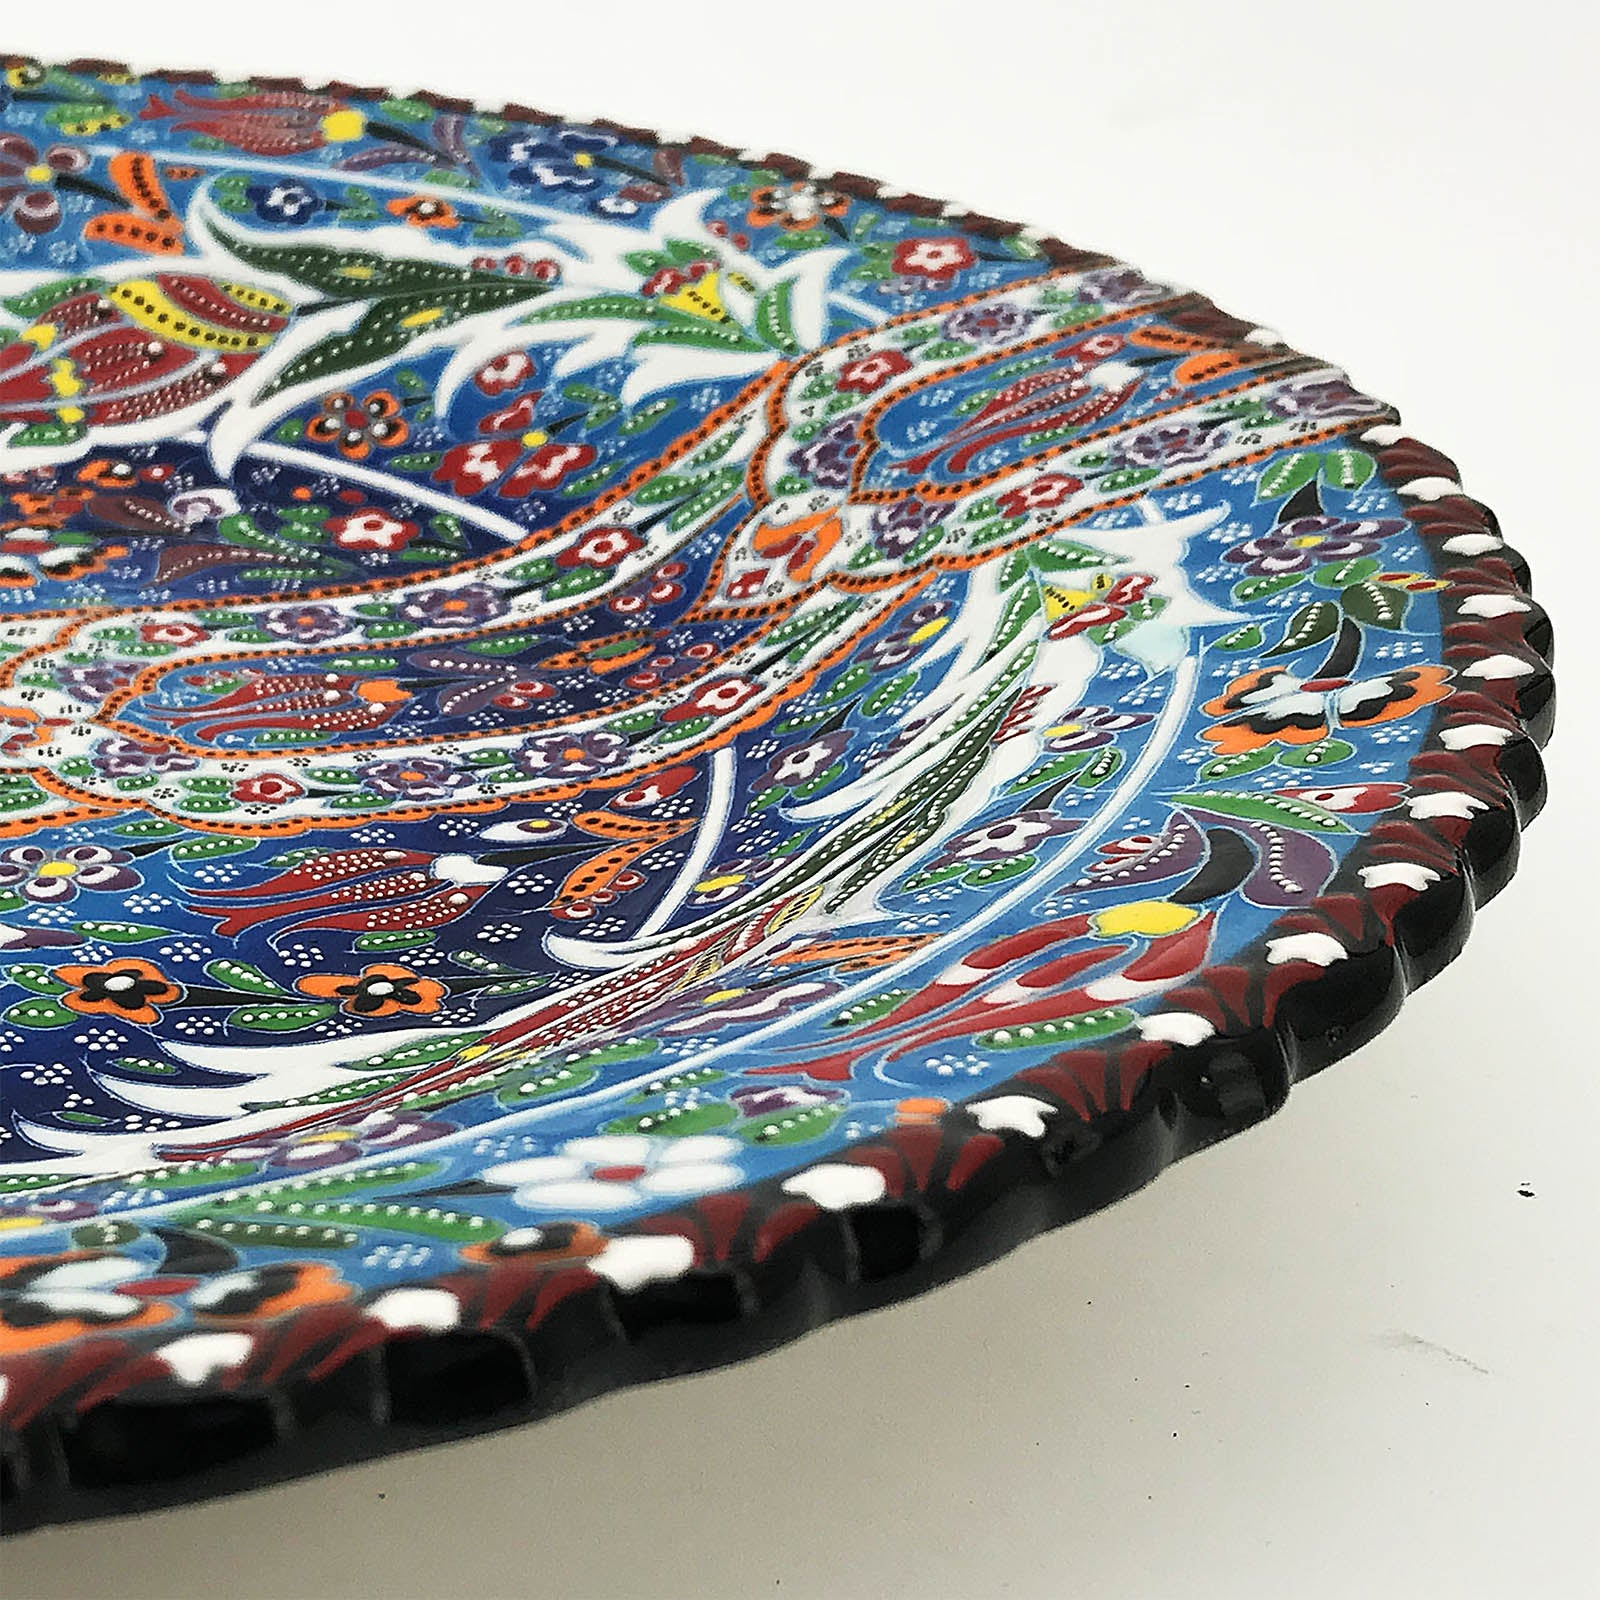 Handmade  Kutaya Turkish ceramic plate  KUC024